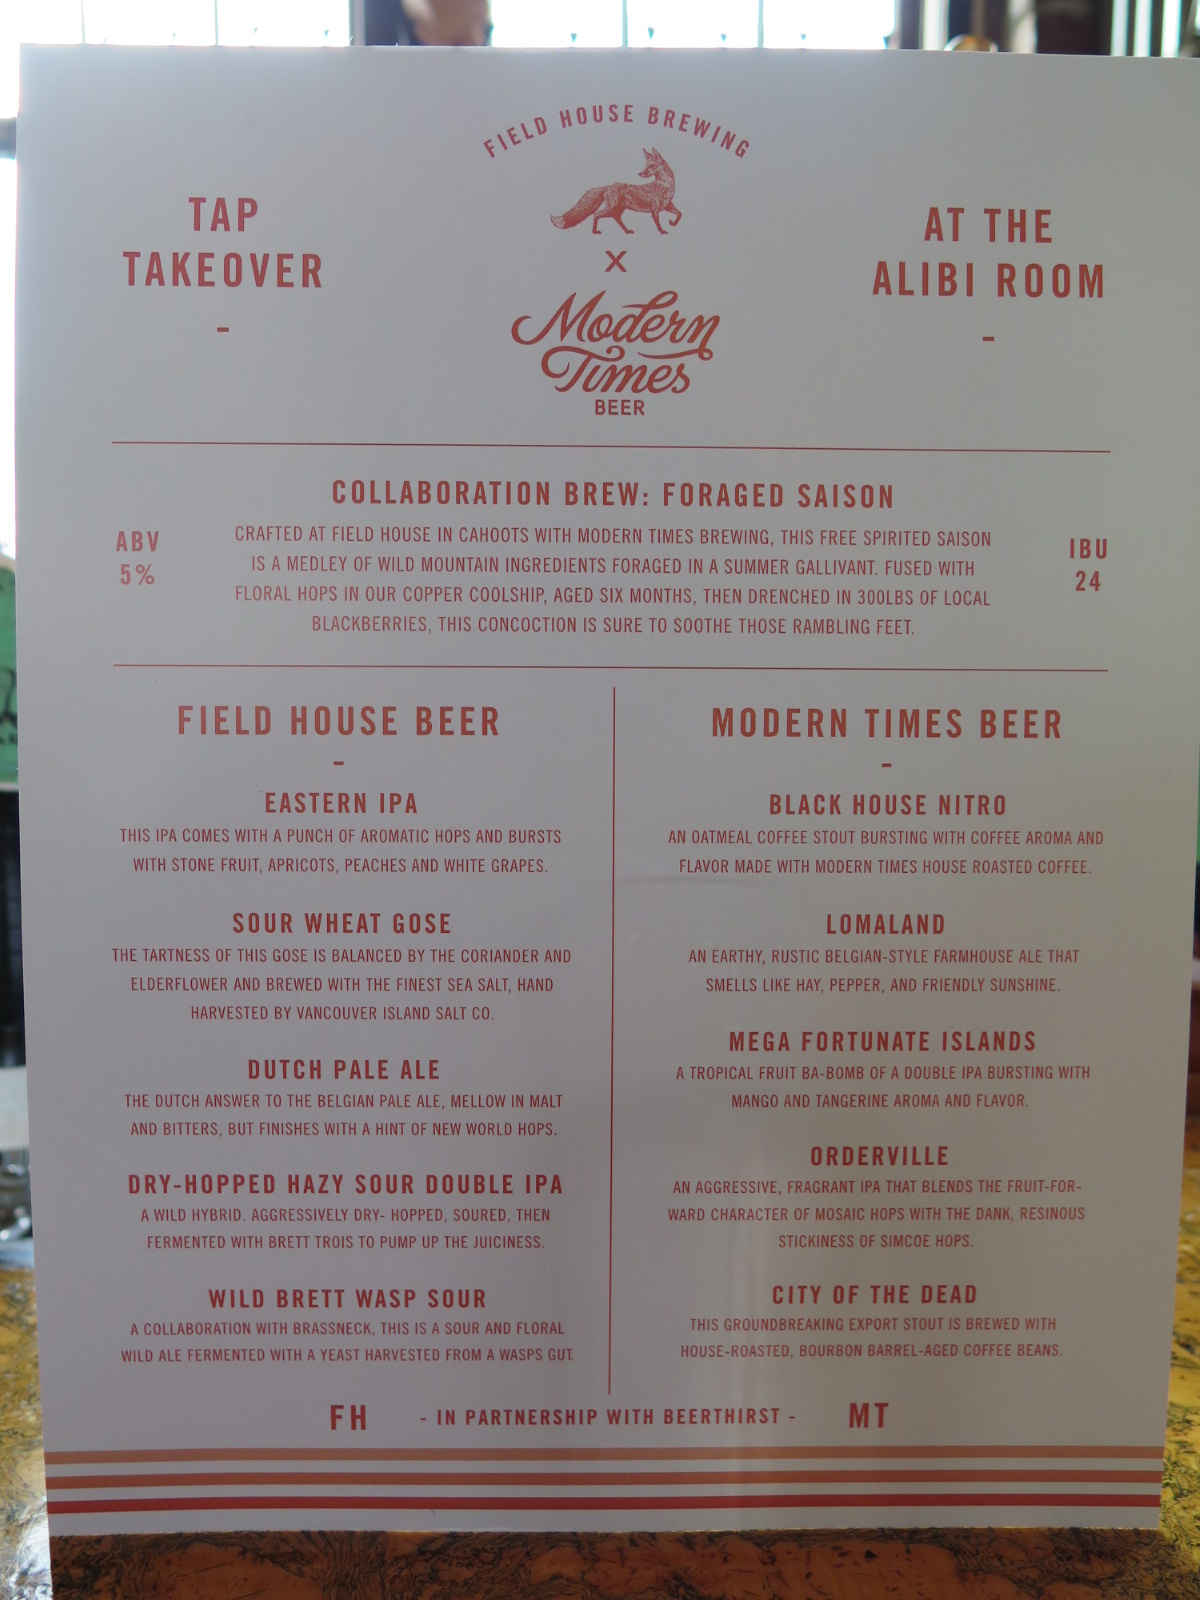 Field House Brewing Modern Times Beer tap takeover Alibi Room